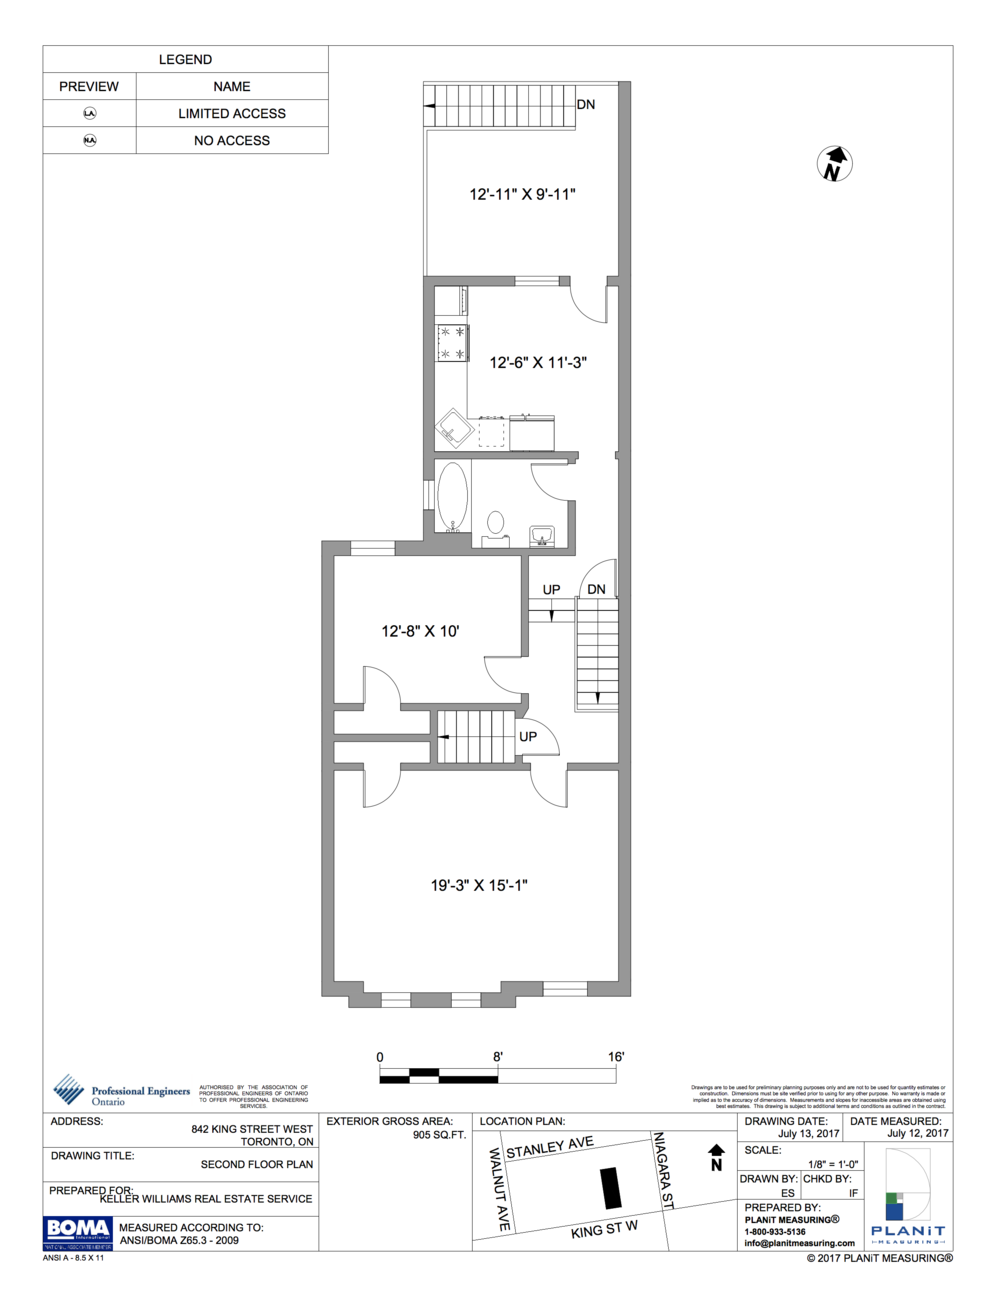 SECOND FLOOR (905 sq ft)